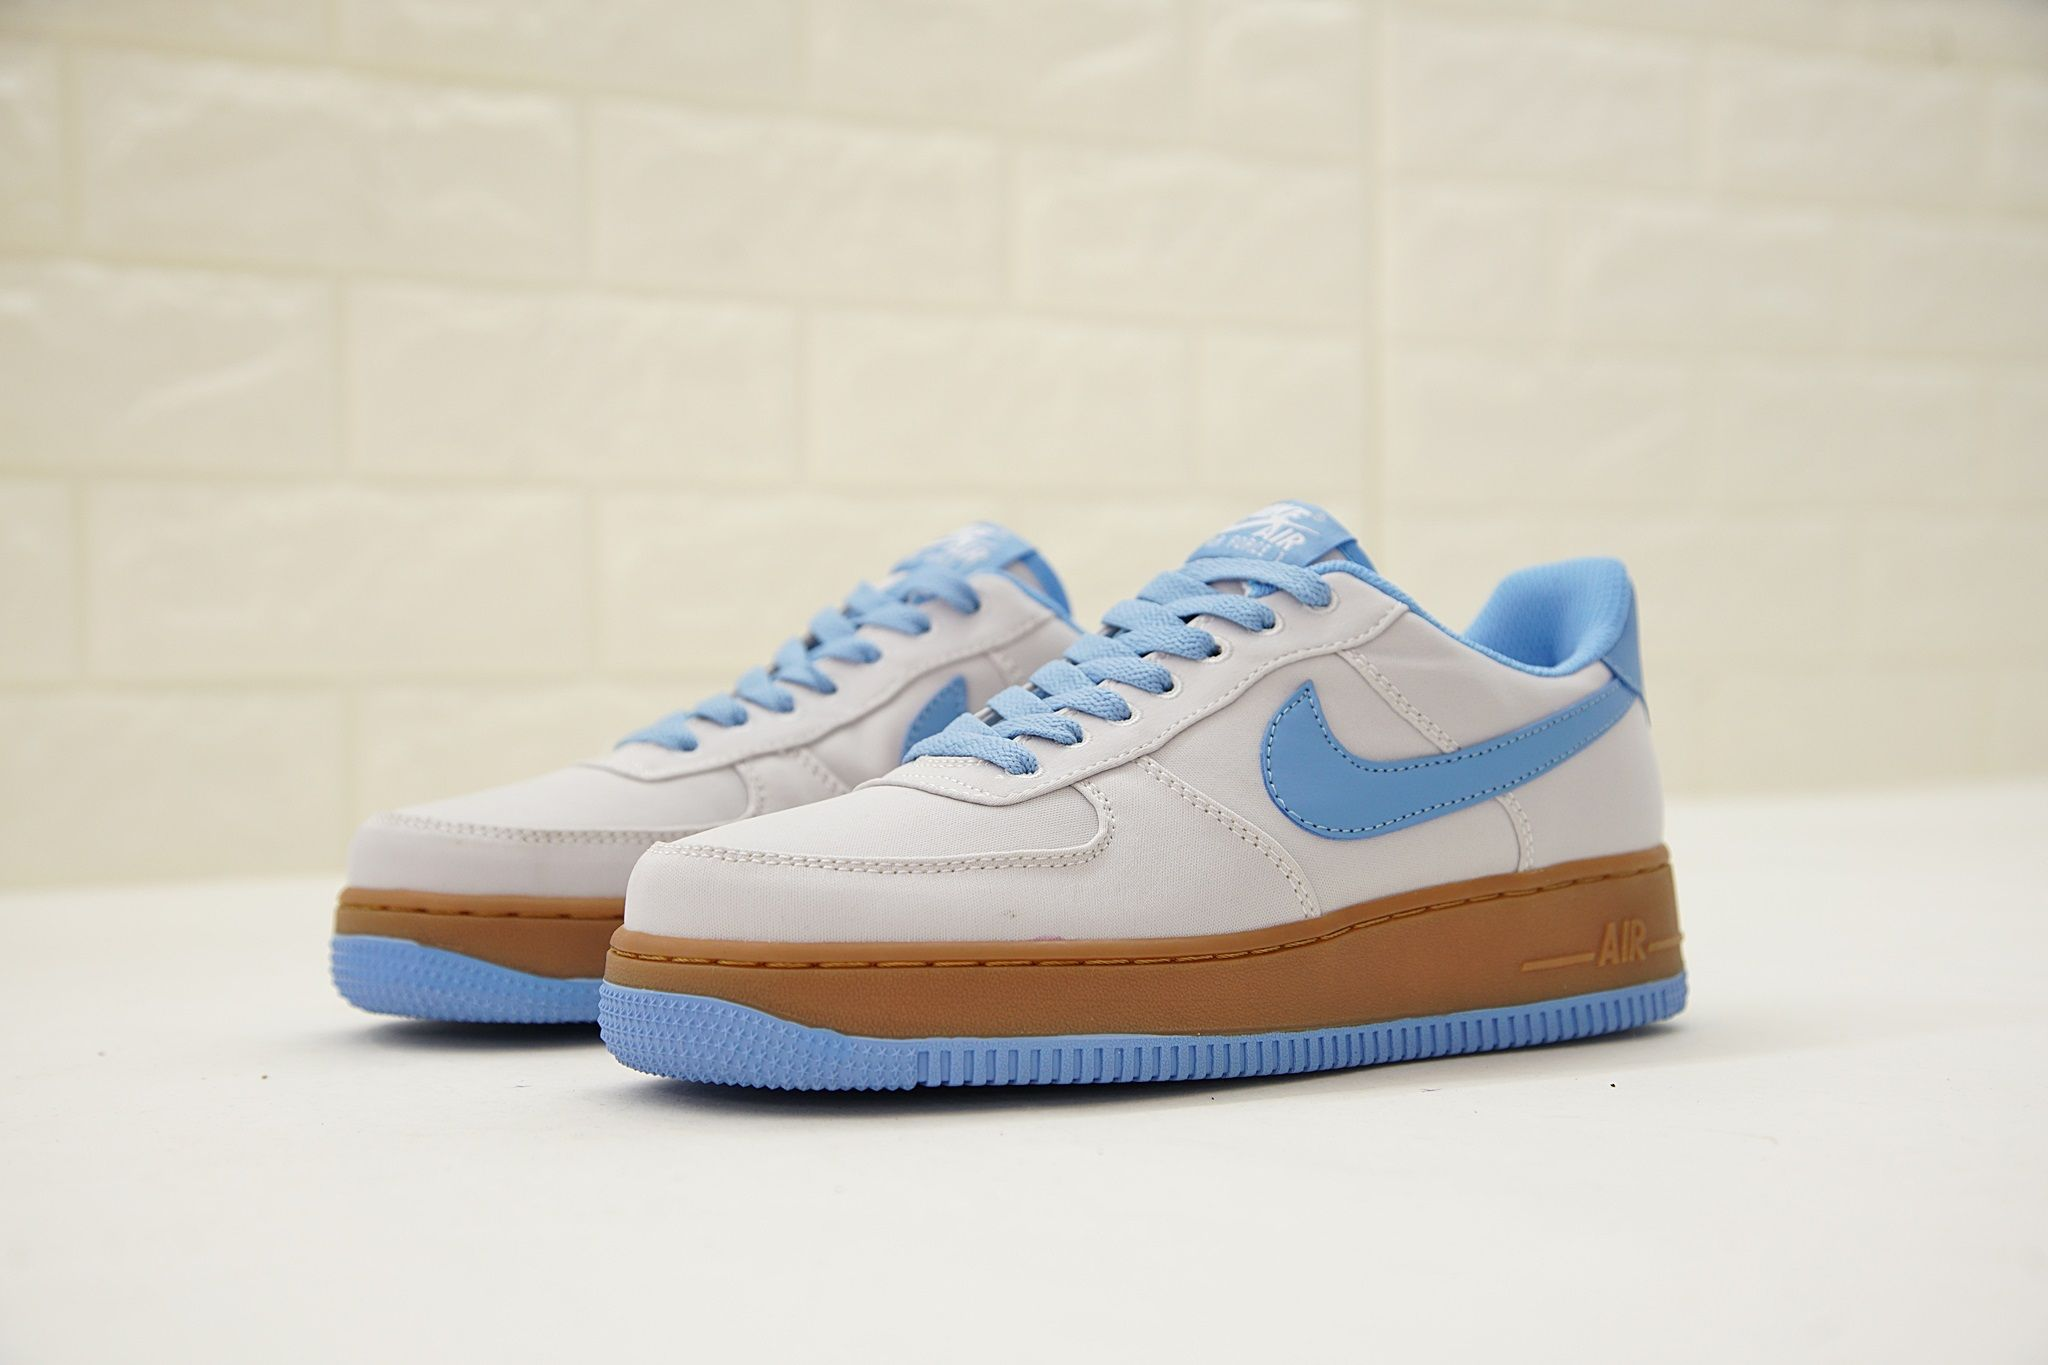 buy online f8ac8 6ae1f nike air force 1 low canvas 空軍一號復古帆布拼色情侶板鞋灰